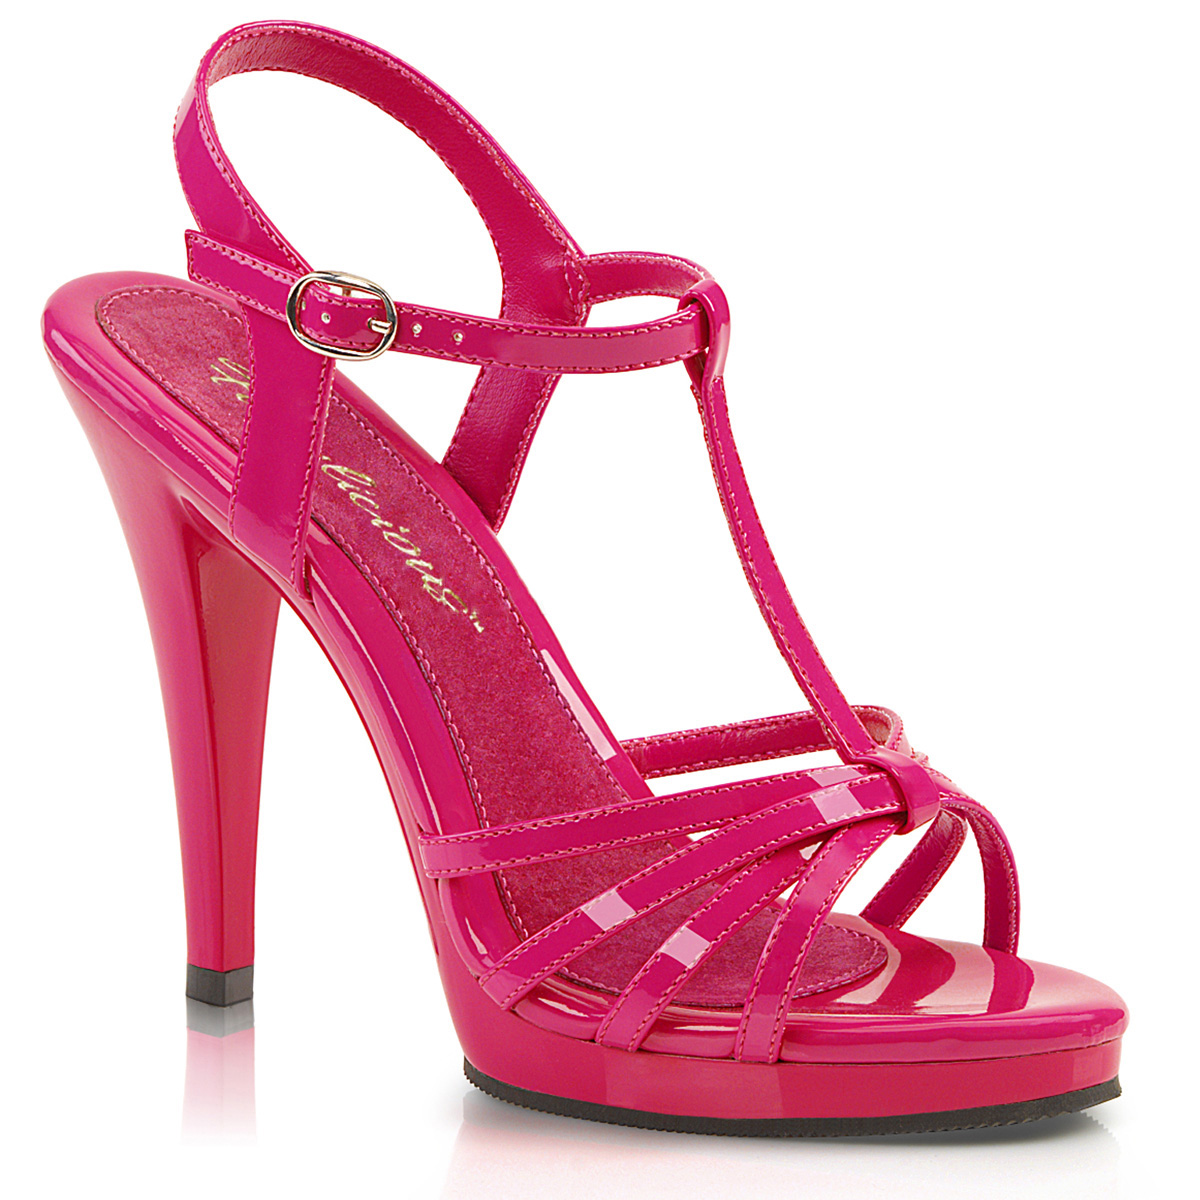 Hot Heeled 420 Sandal Flair High Pink Patent MVzGpqSU